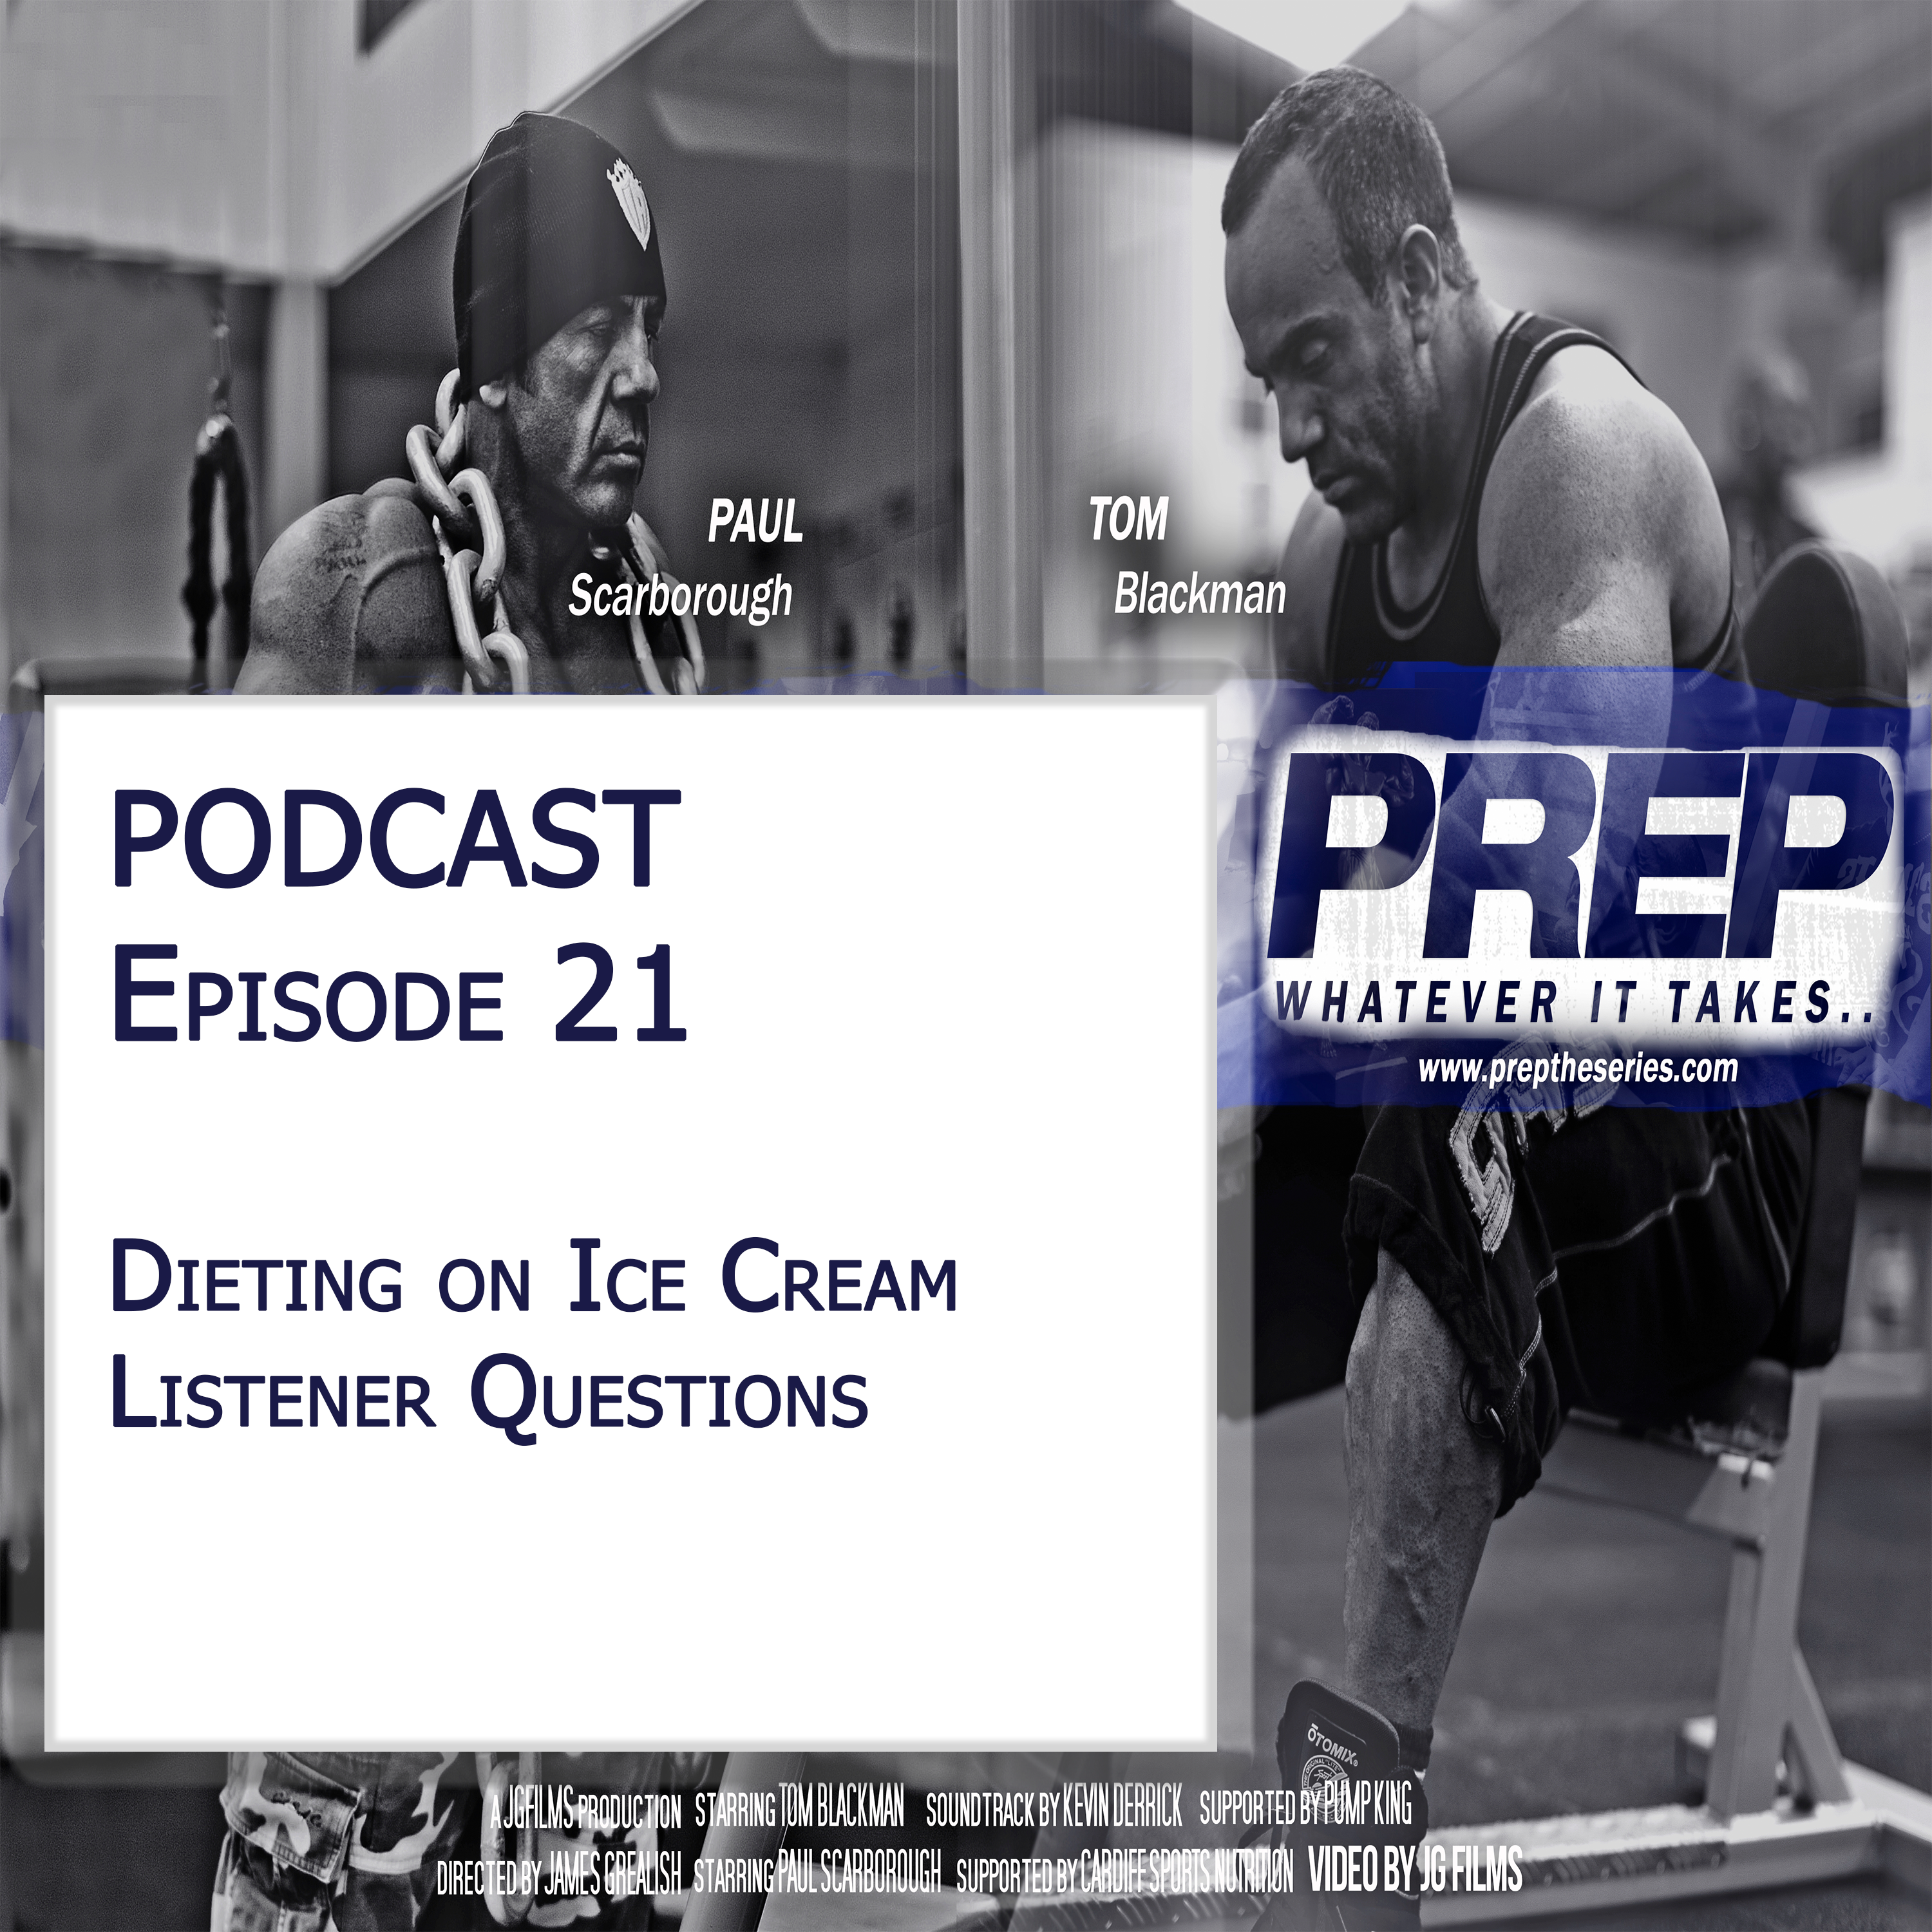 Episode 21 – Dieting On Ice Cream And Listener Questions